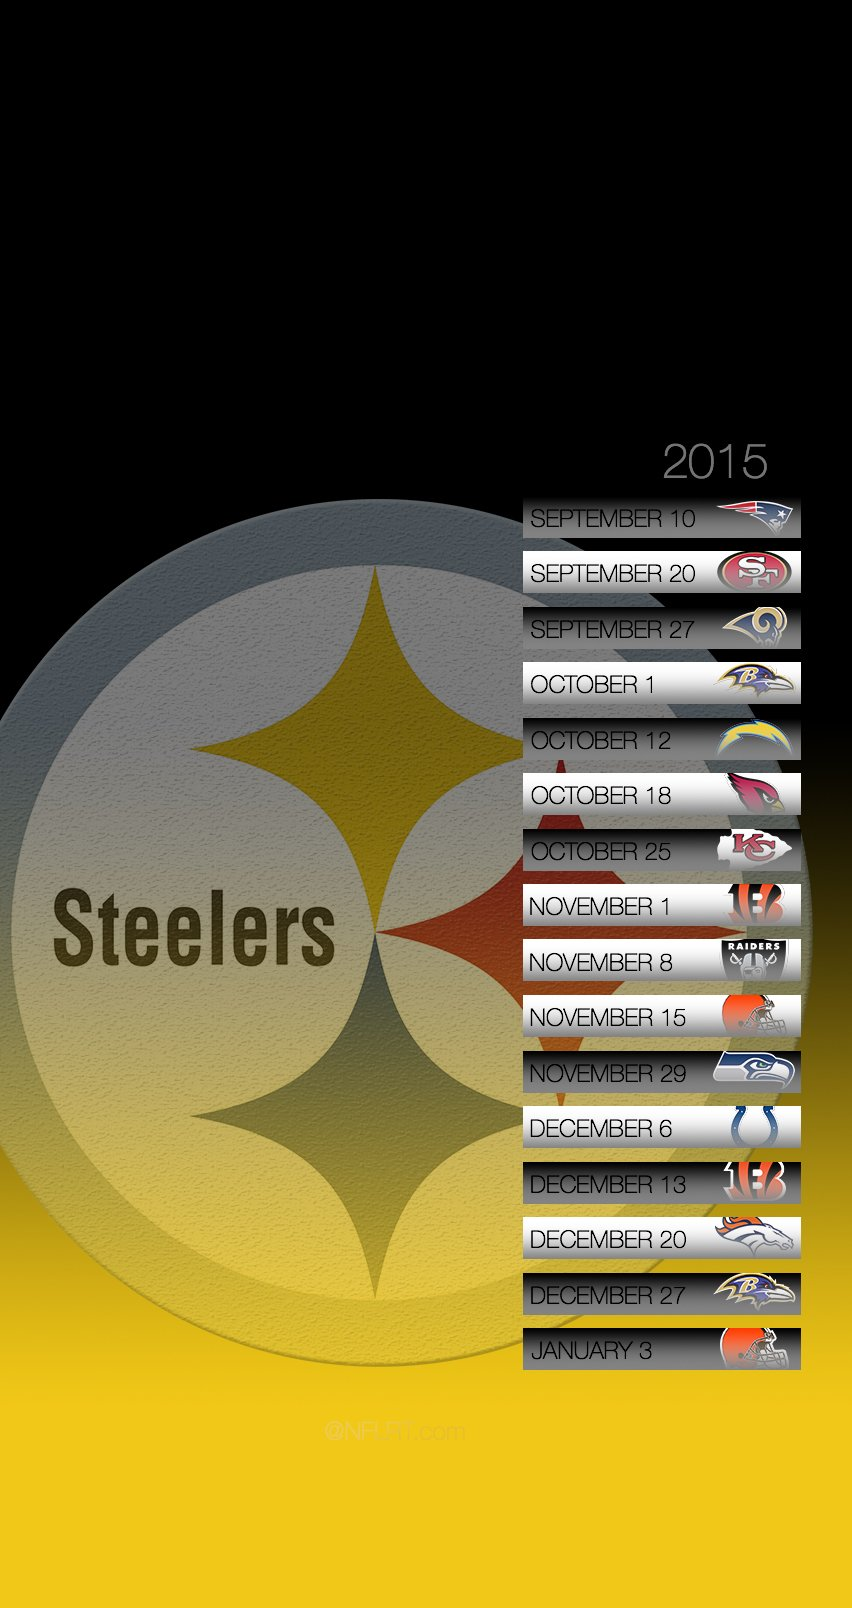 free pittsburgh steelers wallpaper cell phone download